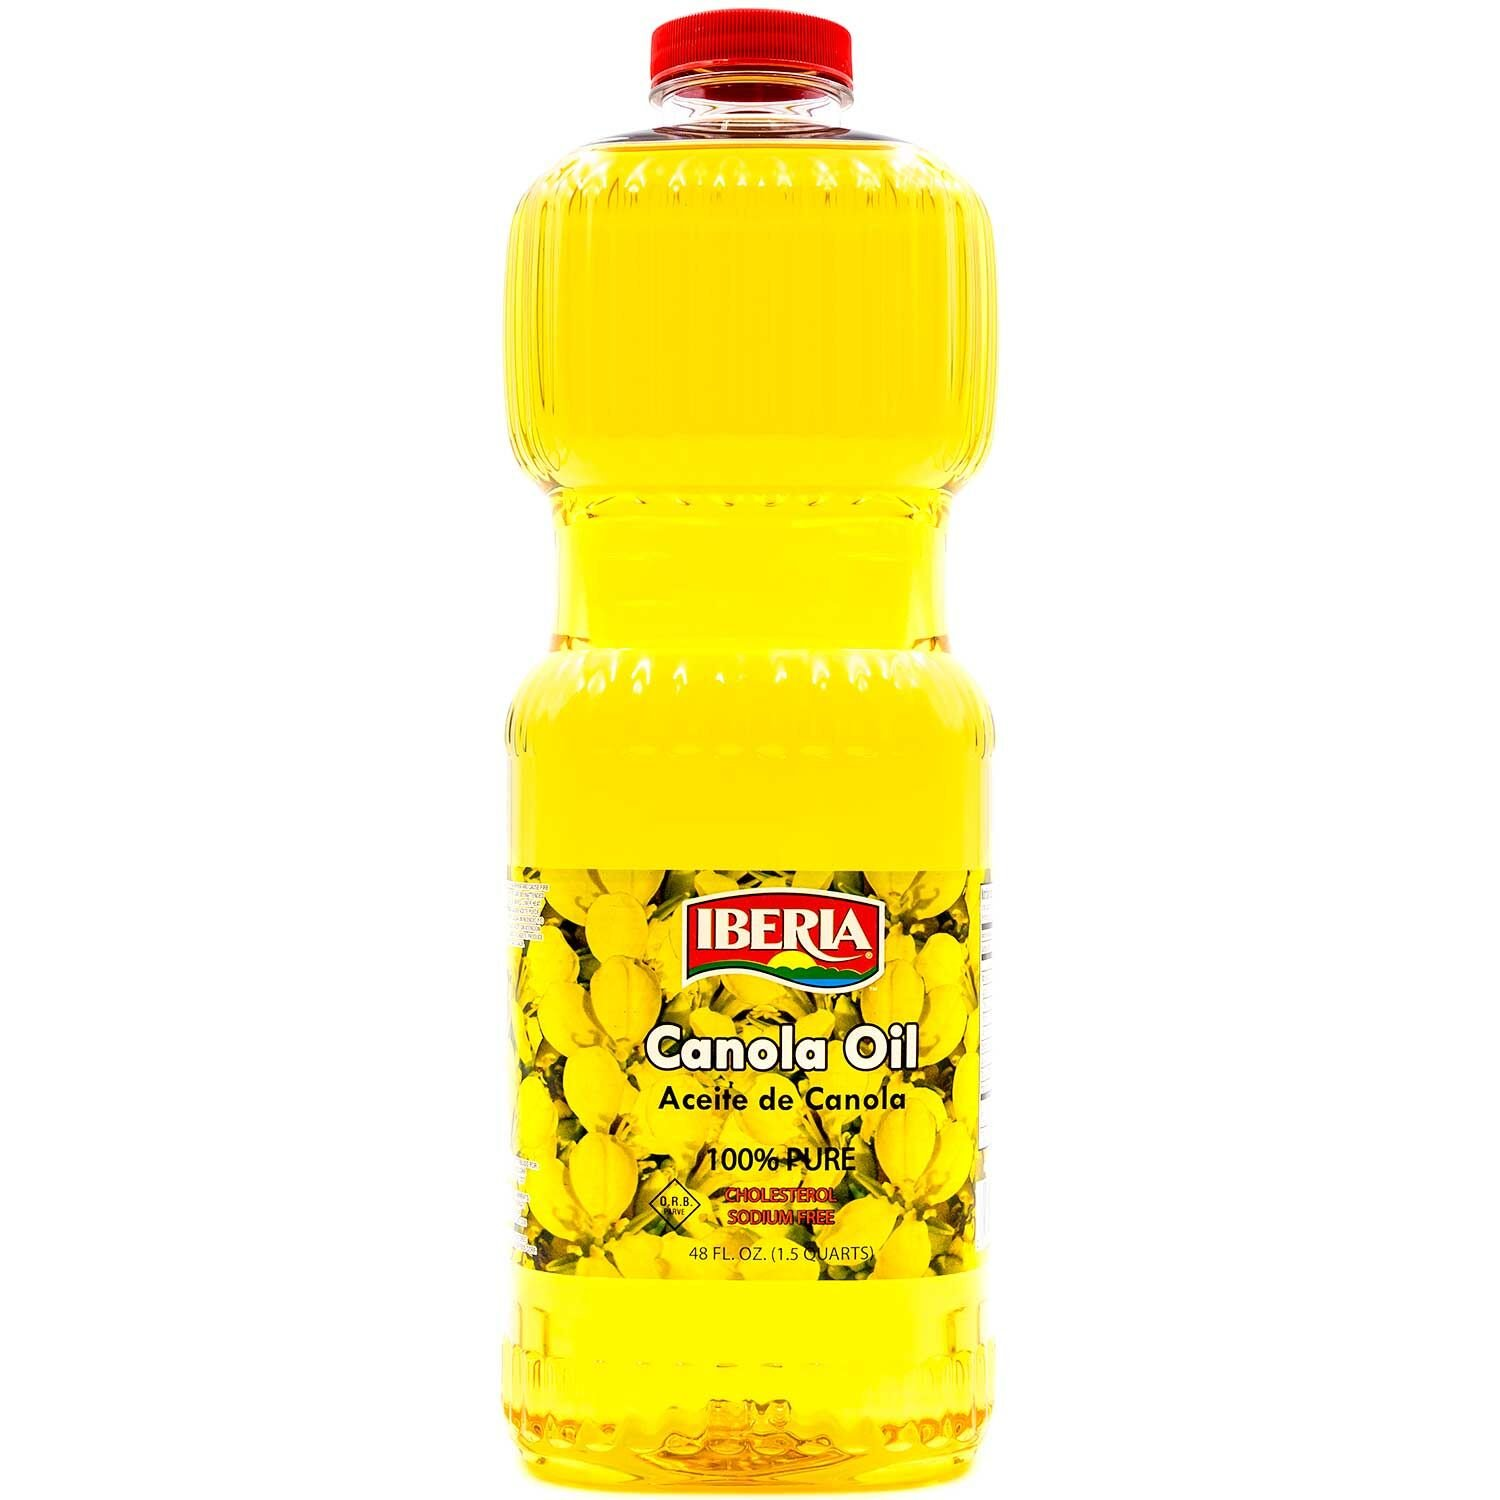 Iberia Canola Limited time for free shipping Oil Max 43% OFF Ounce 48